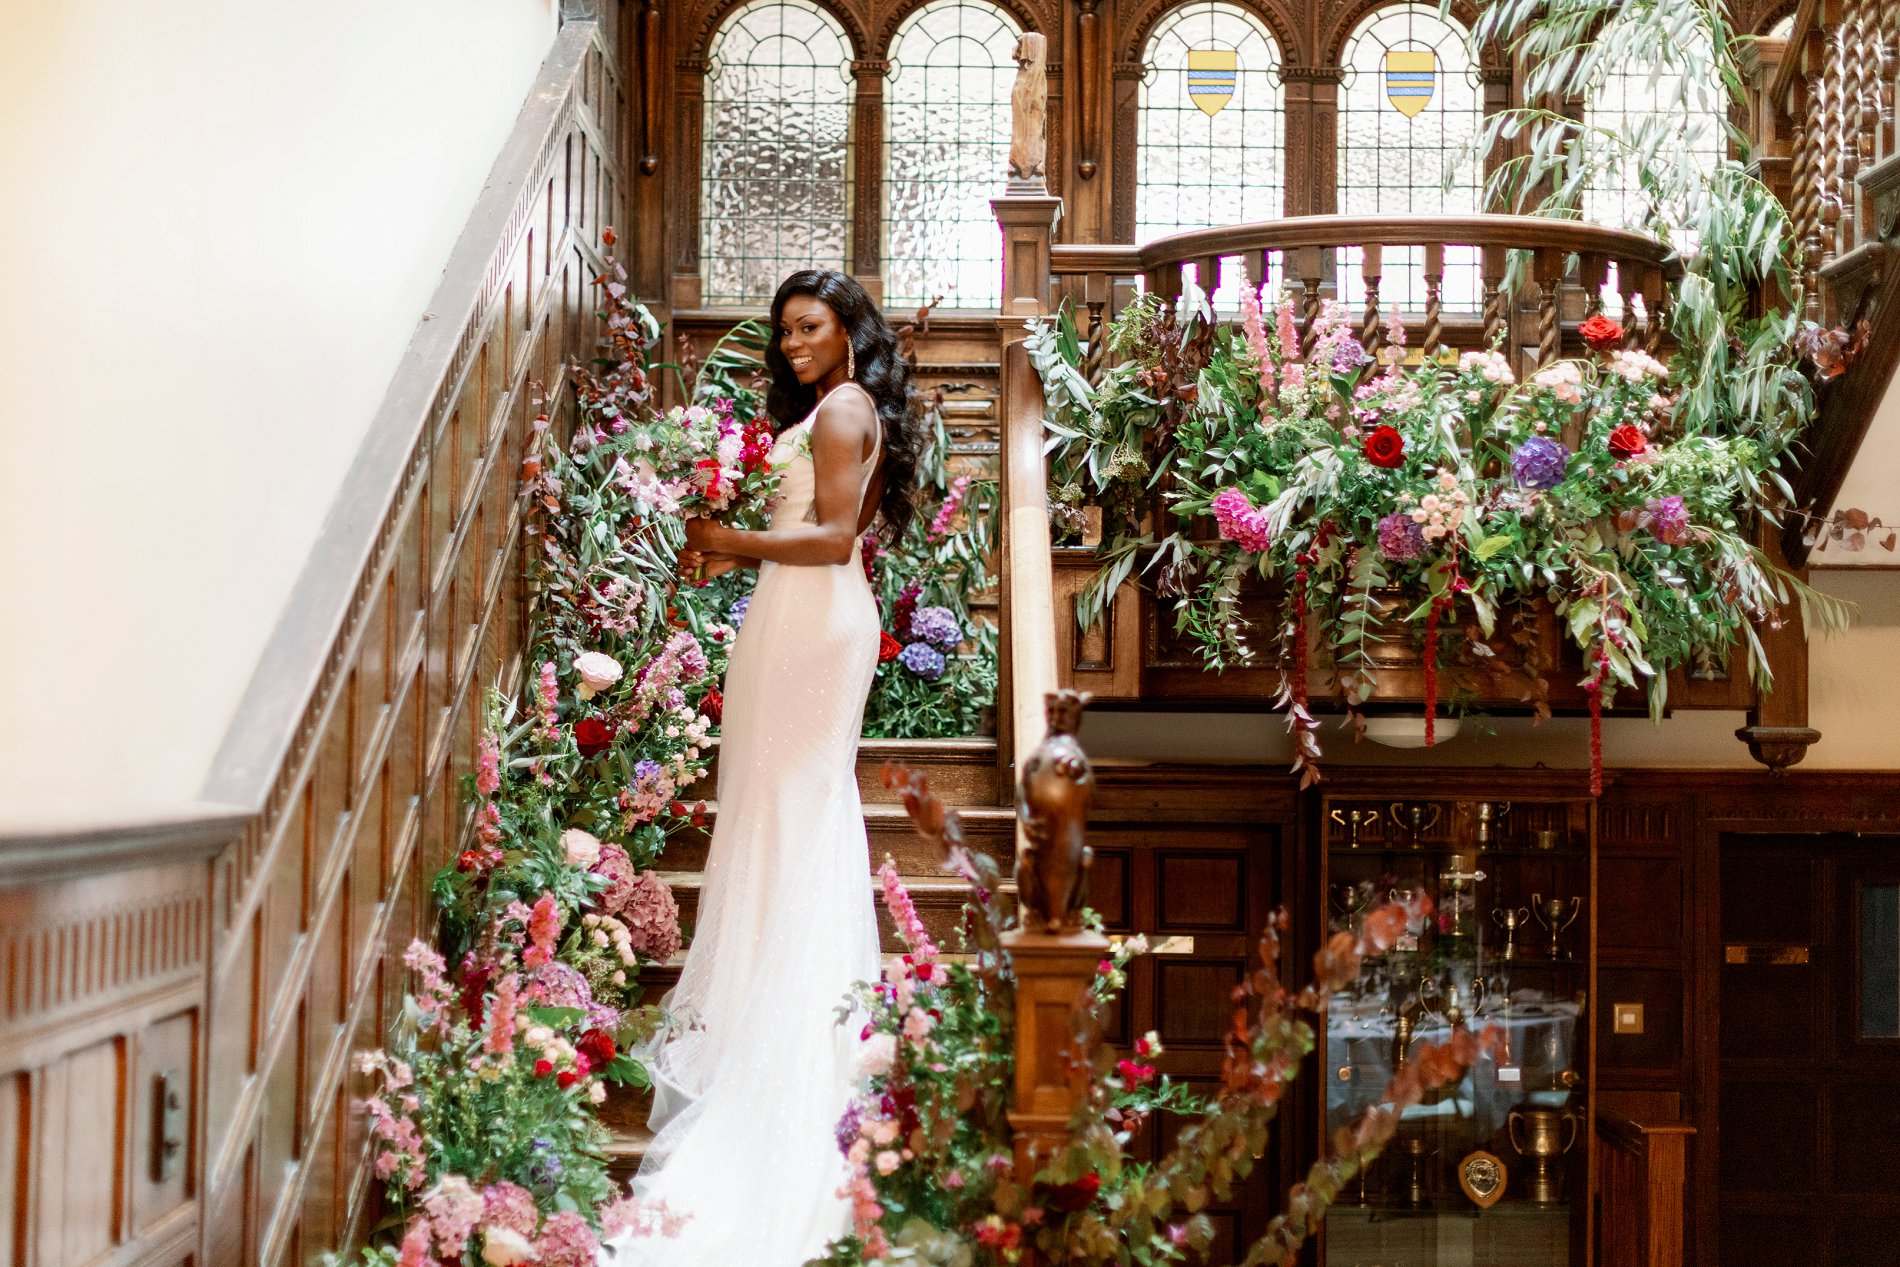 Forever Yours Styled Shoot (c) Camilla J. Hards and Courtney Dee Photography (25)